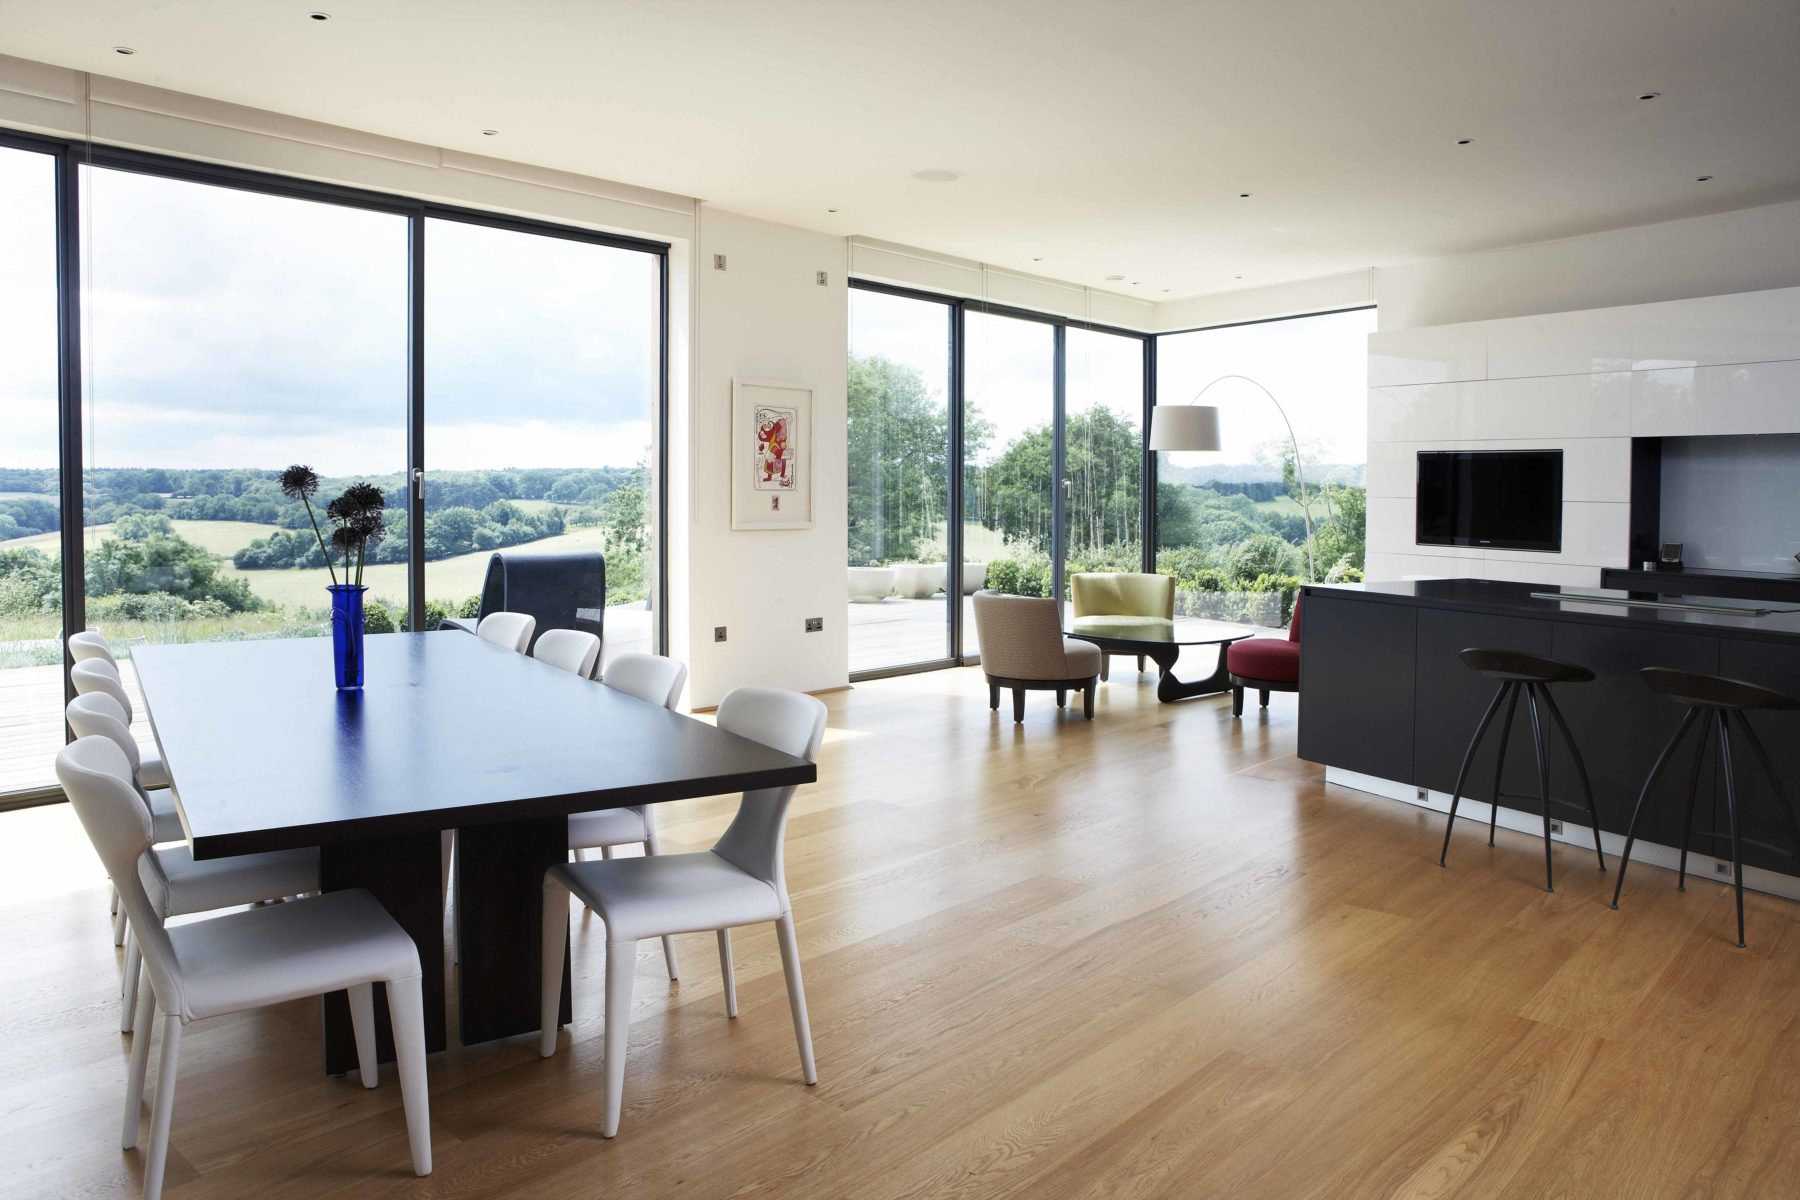 minimalist kitchen and dining room setting